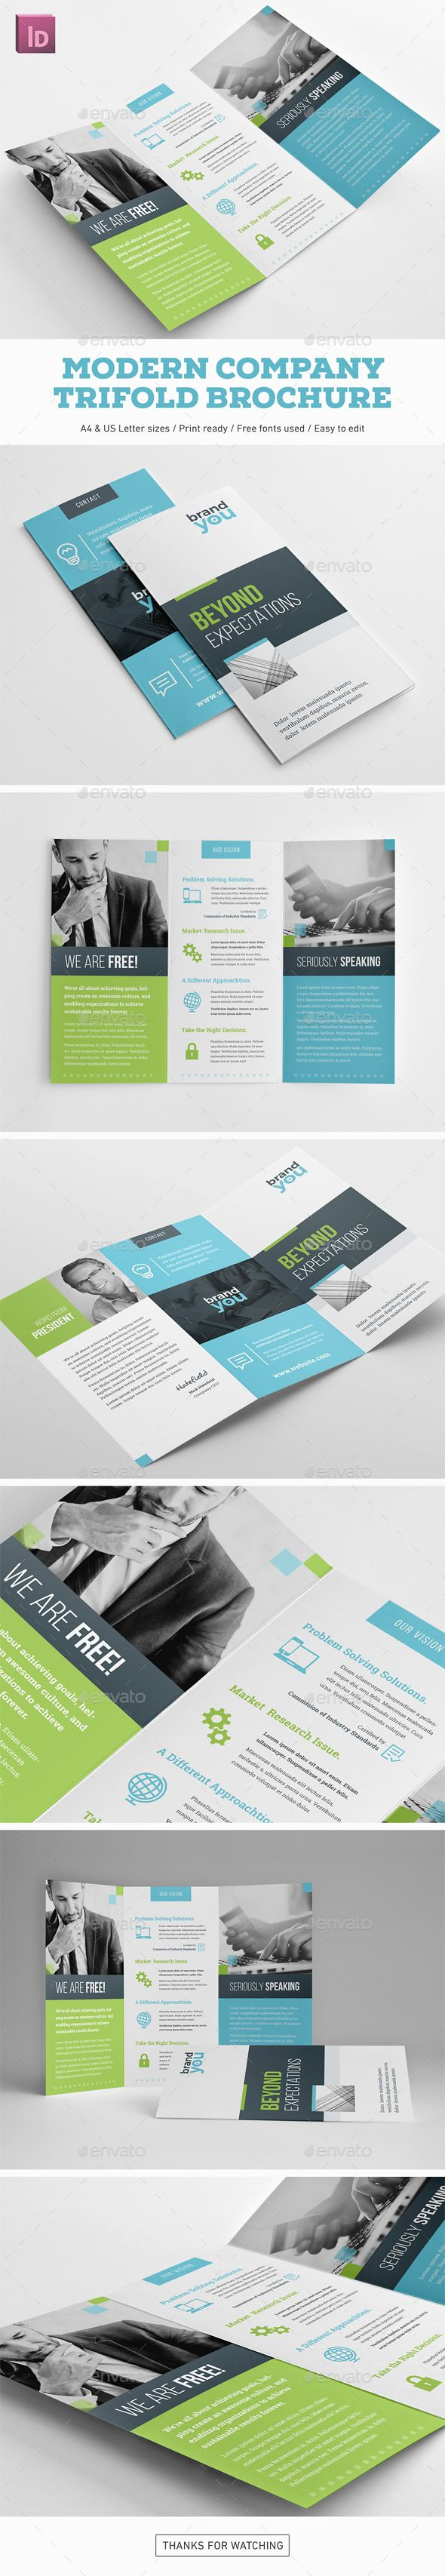 modern company trifold brochure template indesign indd brochure templates pinterest grafik. Black Bedroom Furniture Sets. Home Design Ideas